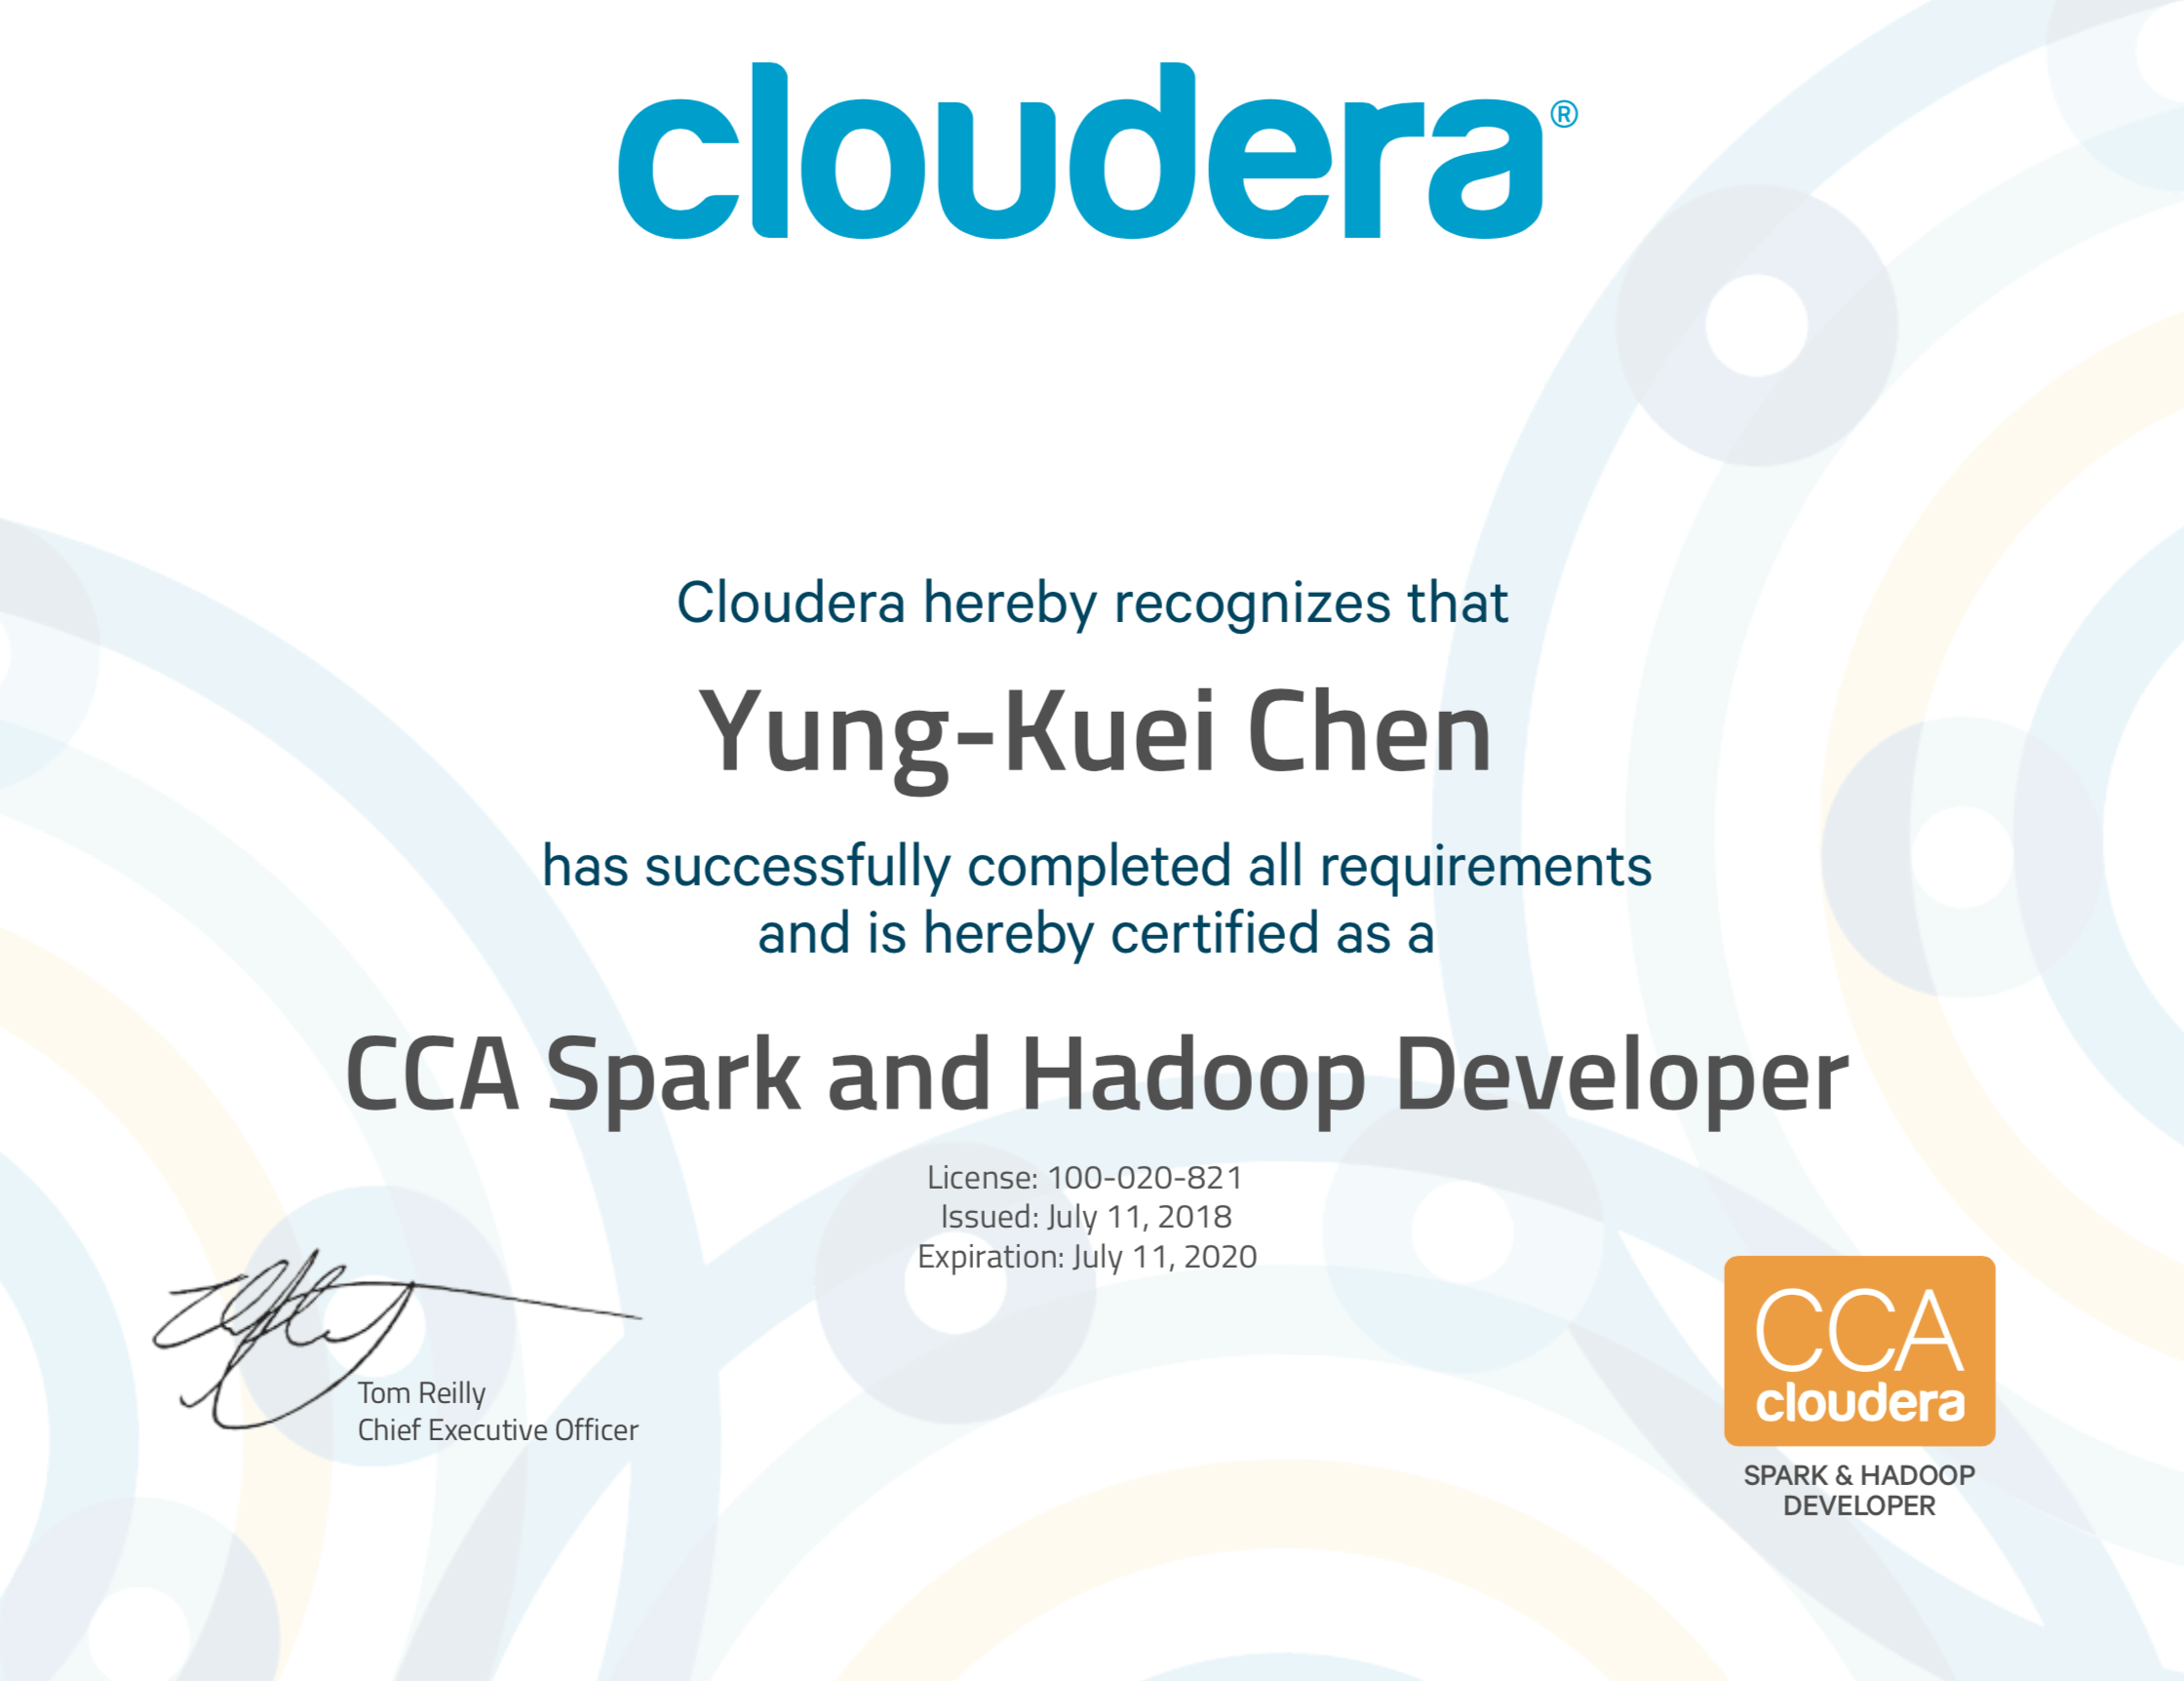 My Experience Of Getting Clouder Cca Spark And Hadoop